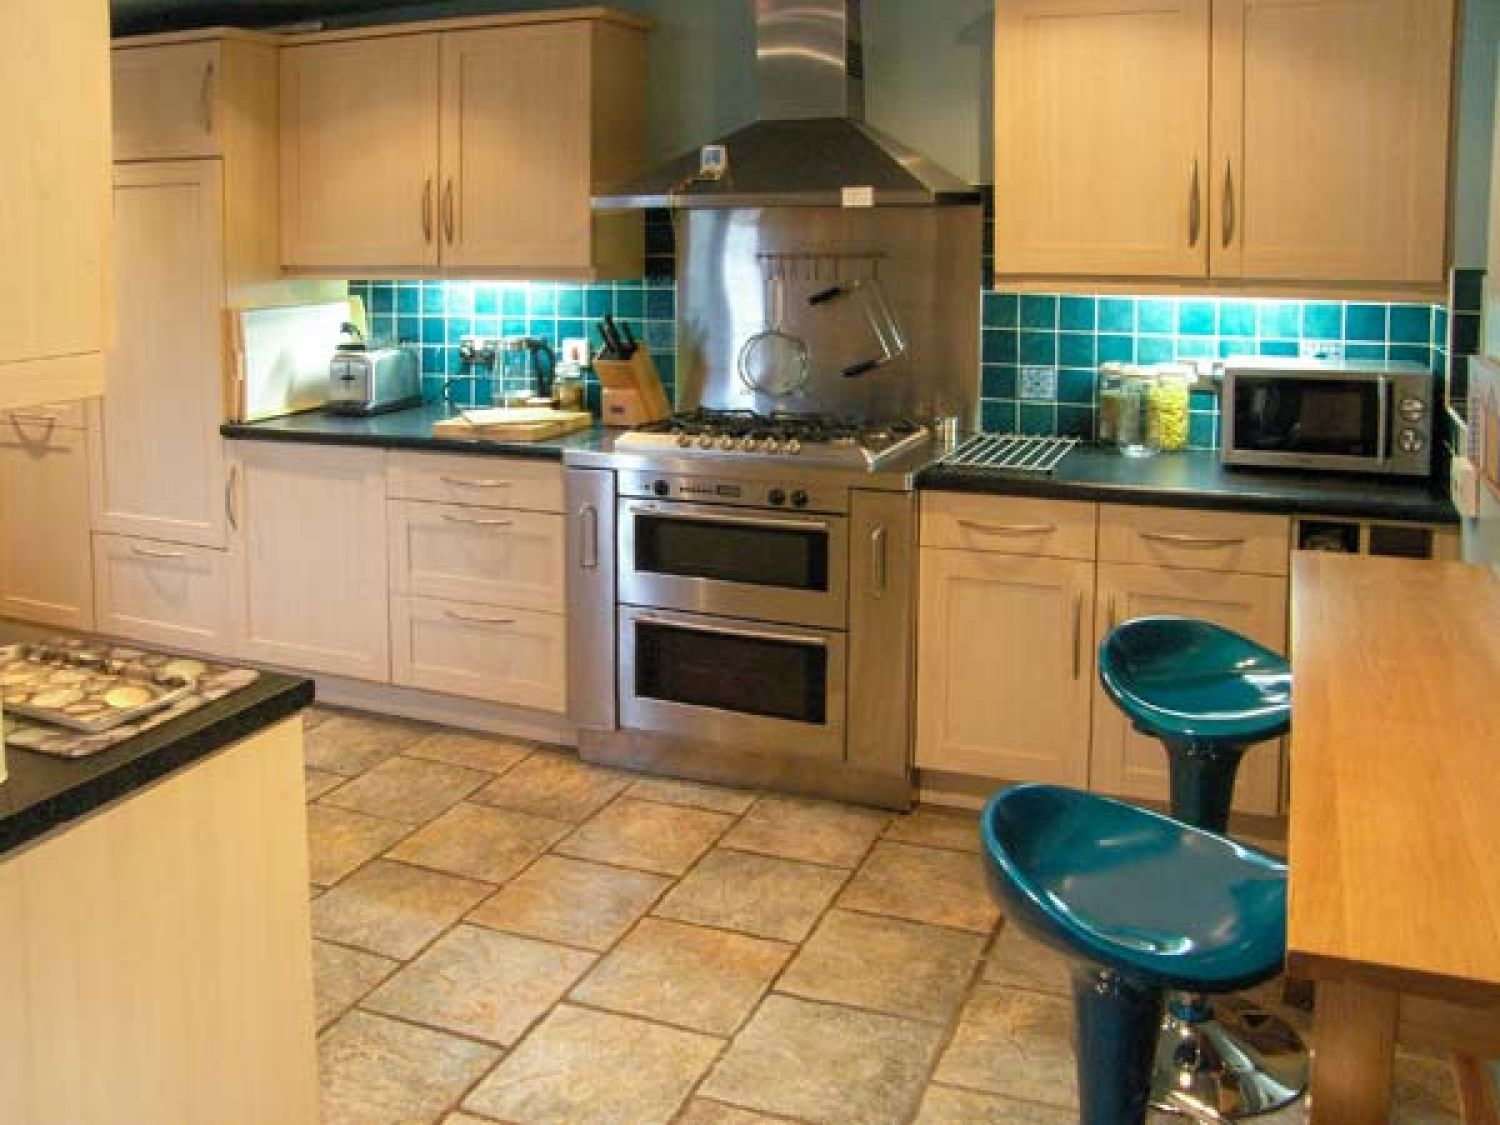 Kitchen - Self catering accommodation - Llandudno